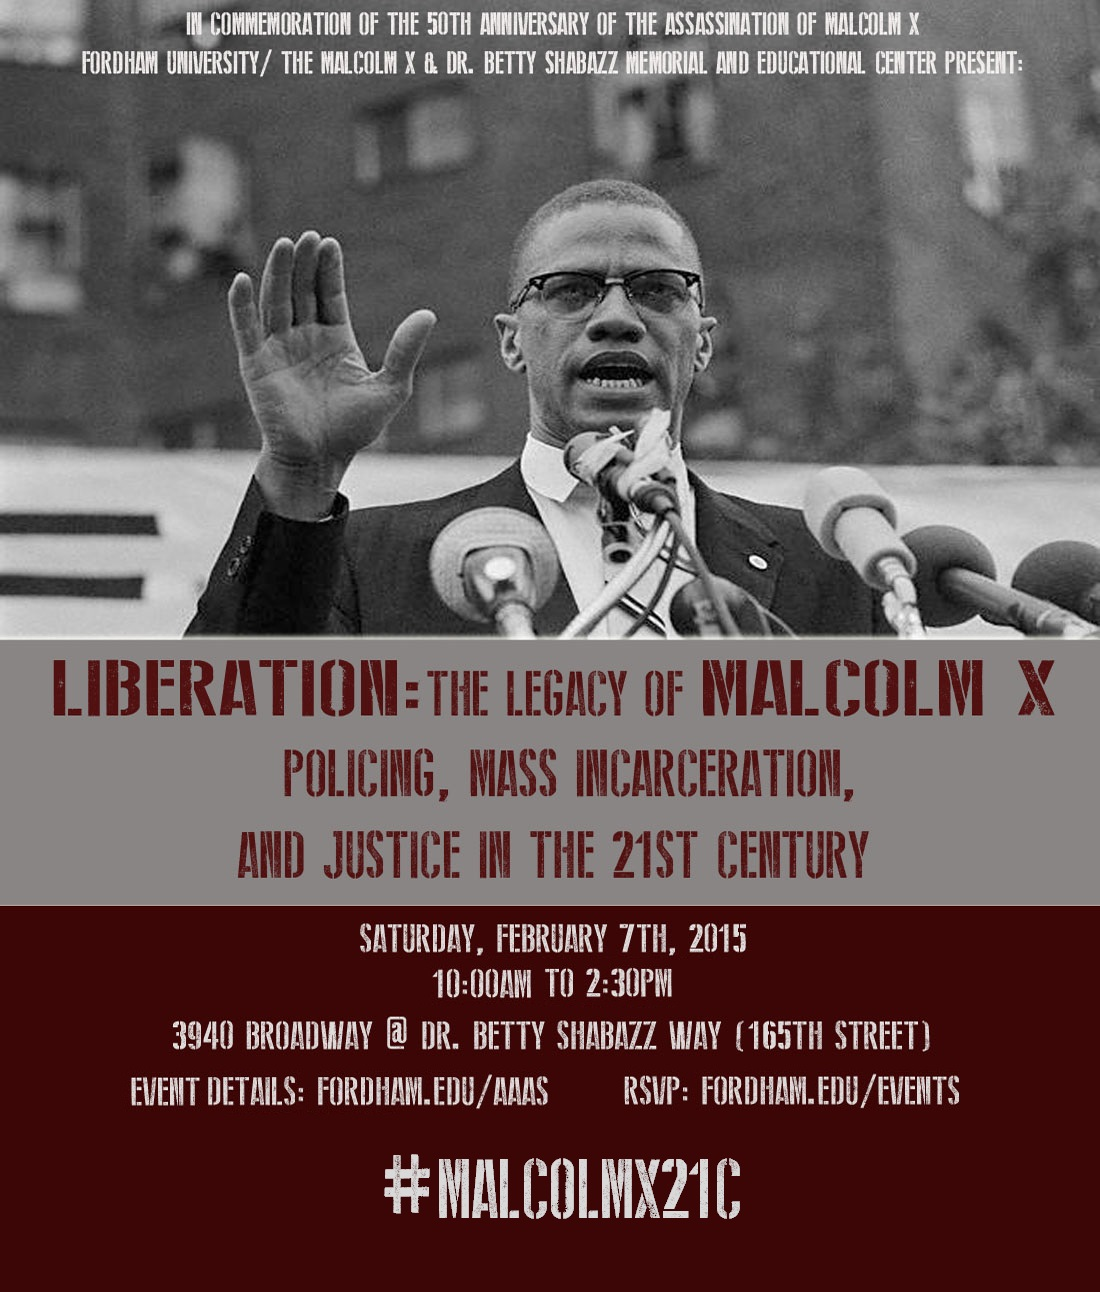 What were malcolm x's main ideas?